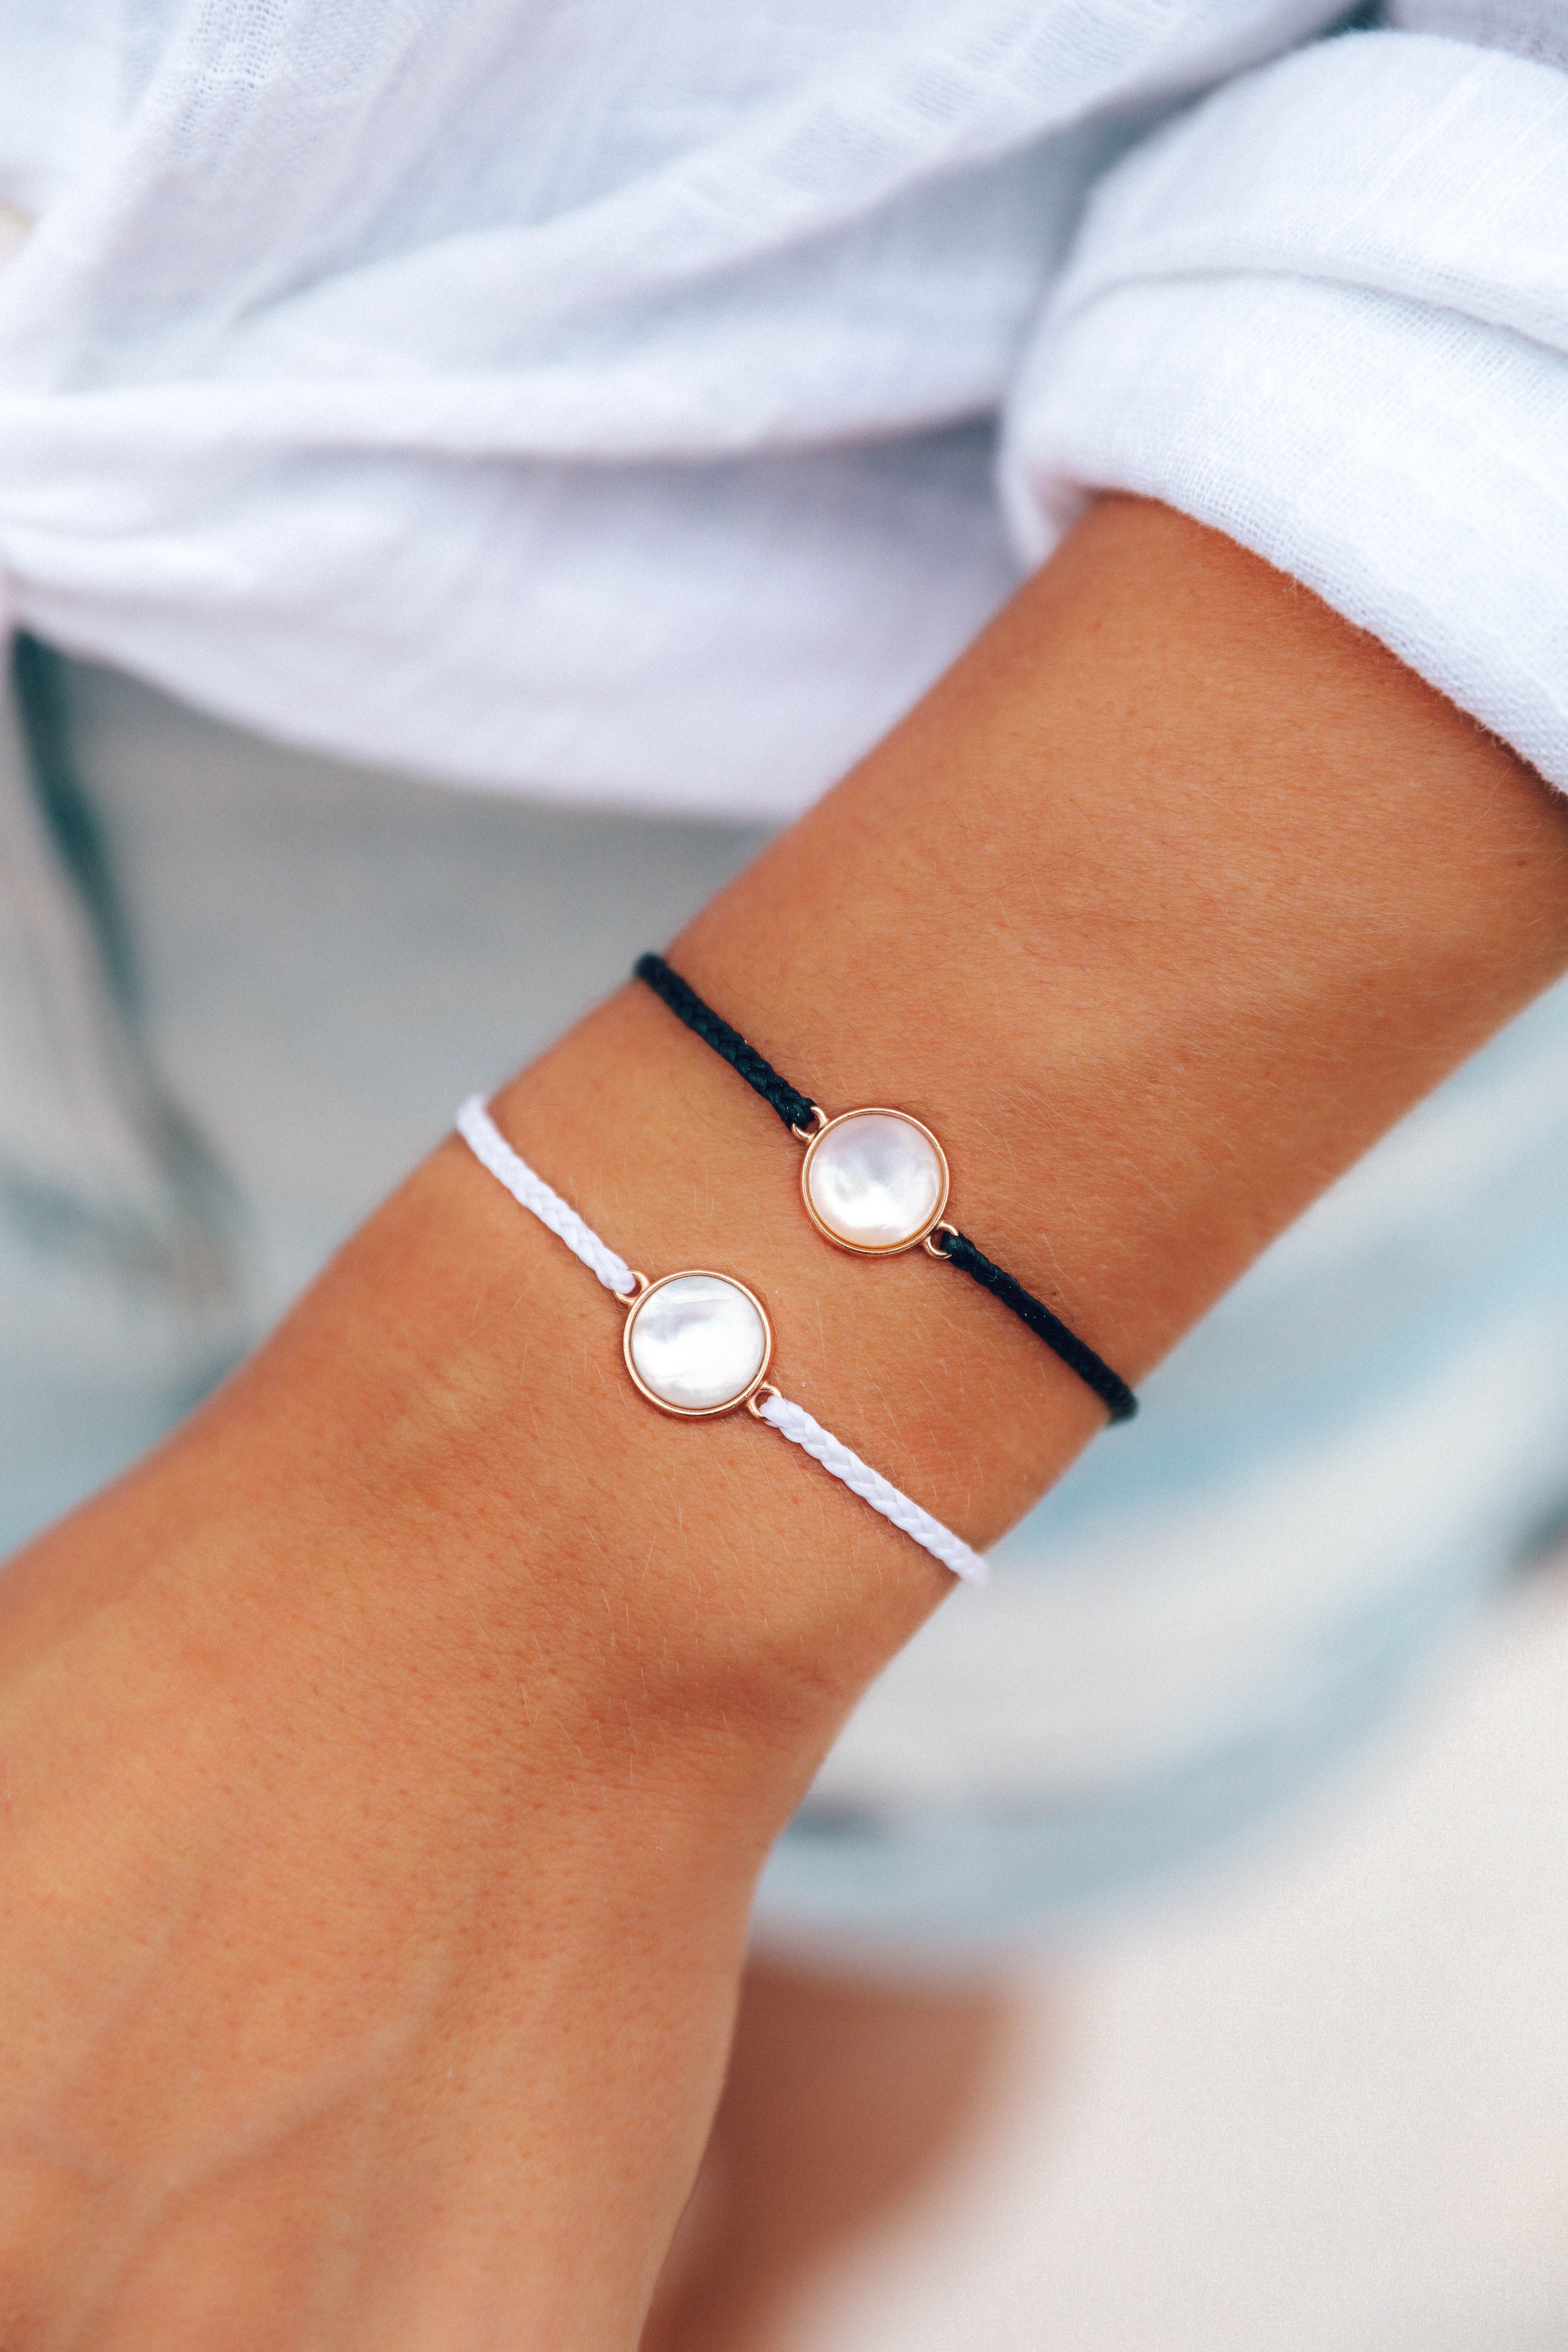 Our Best Selling Riviera Bracelet Is Back With A New Design In Two Classic Colors Black And White It Features A P Pura Vida Bracelets Pura Vida Cute Bracelets